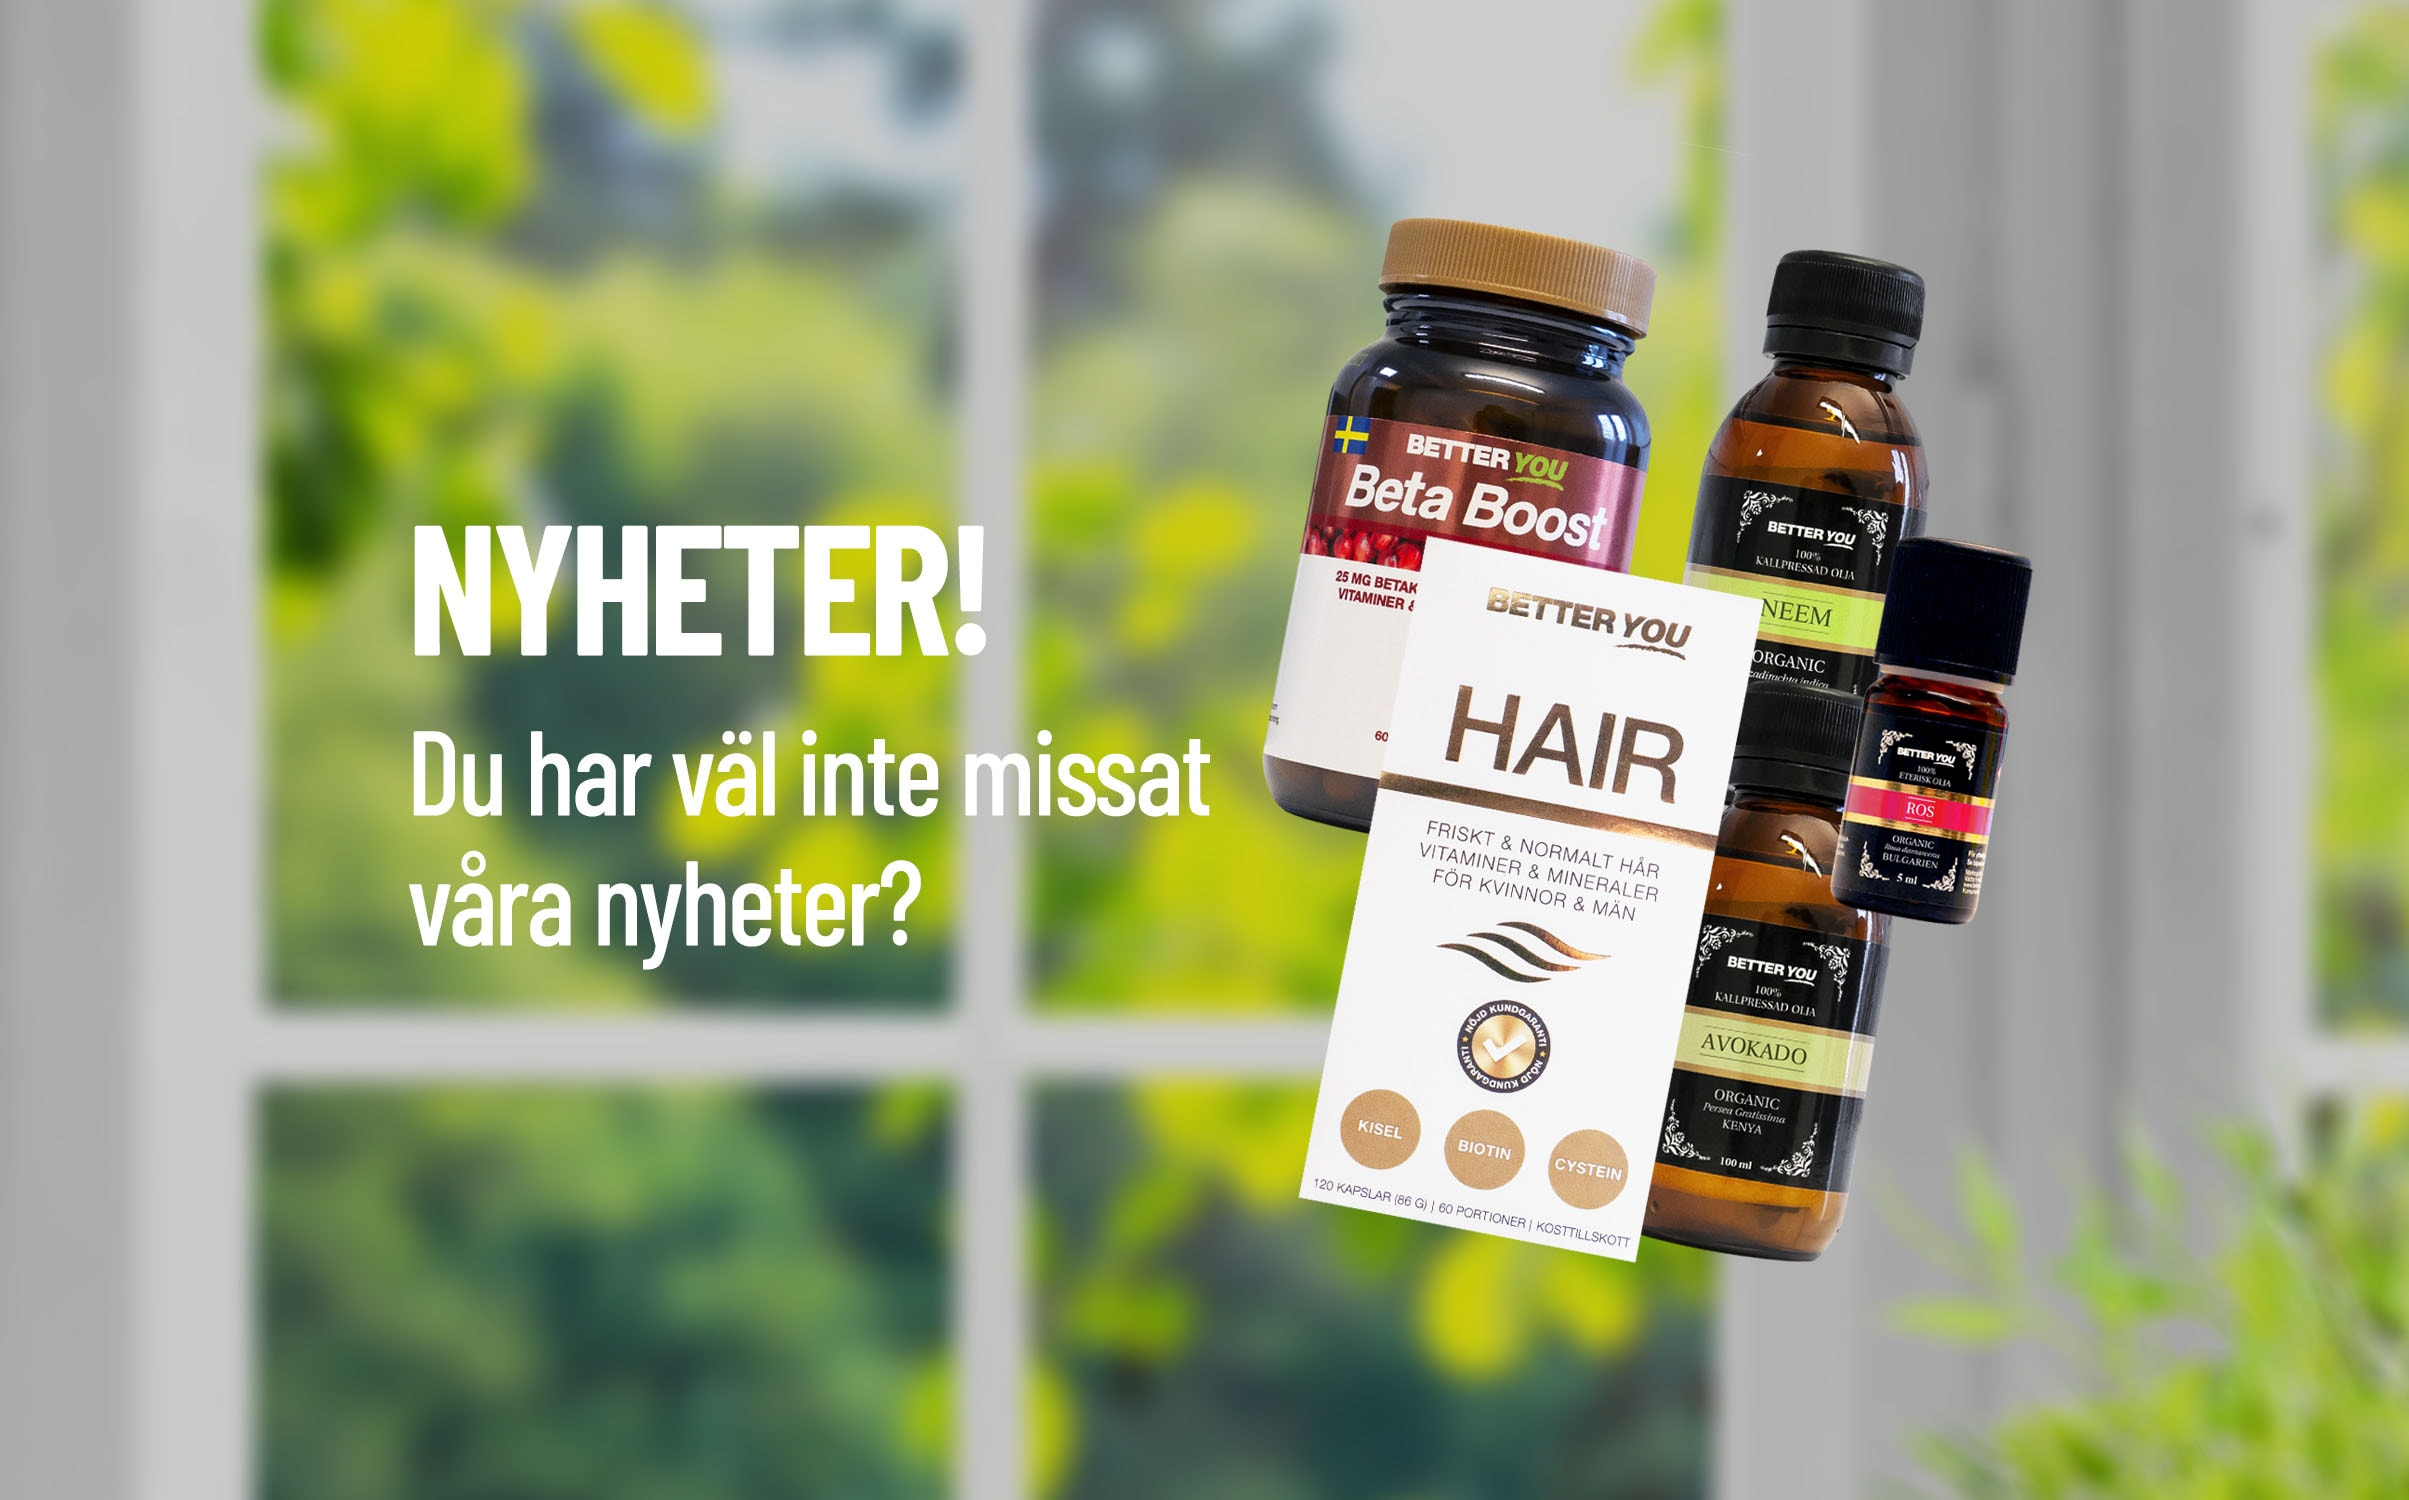 https://www.betteryou.se/pub_docs/files/Custom_Item_Images/Stora_snurr_2_nyheter_21.jpg